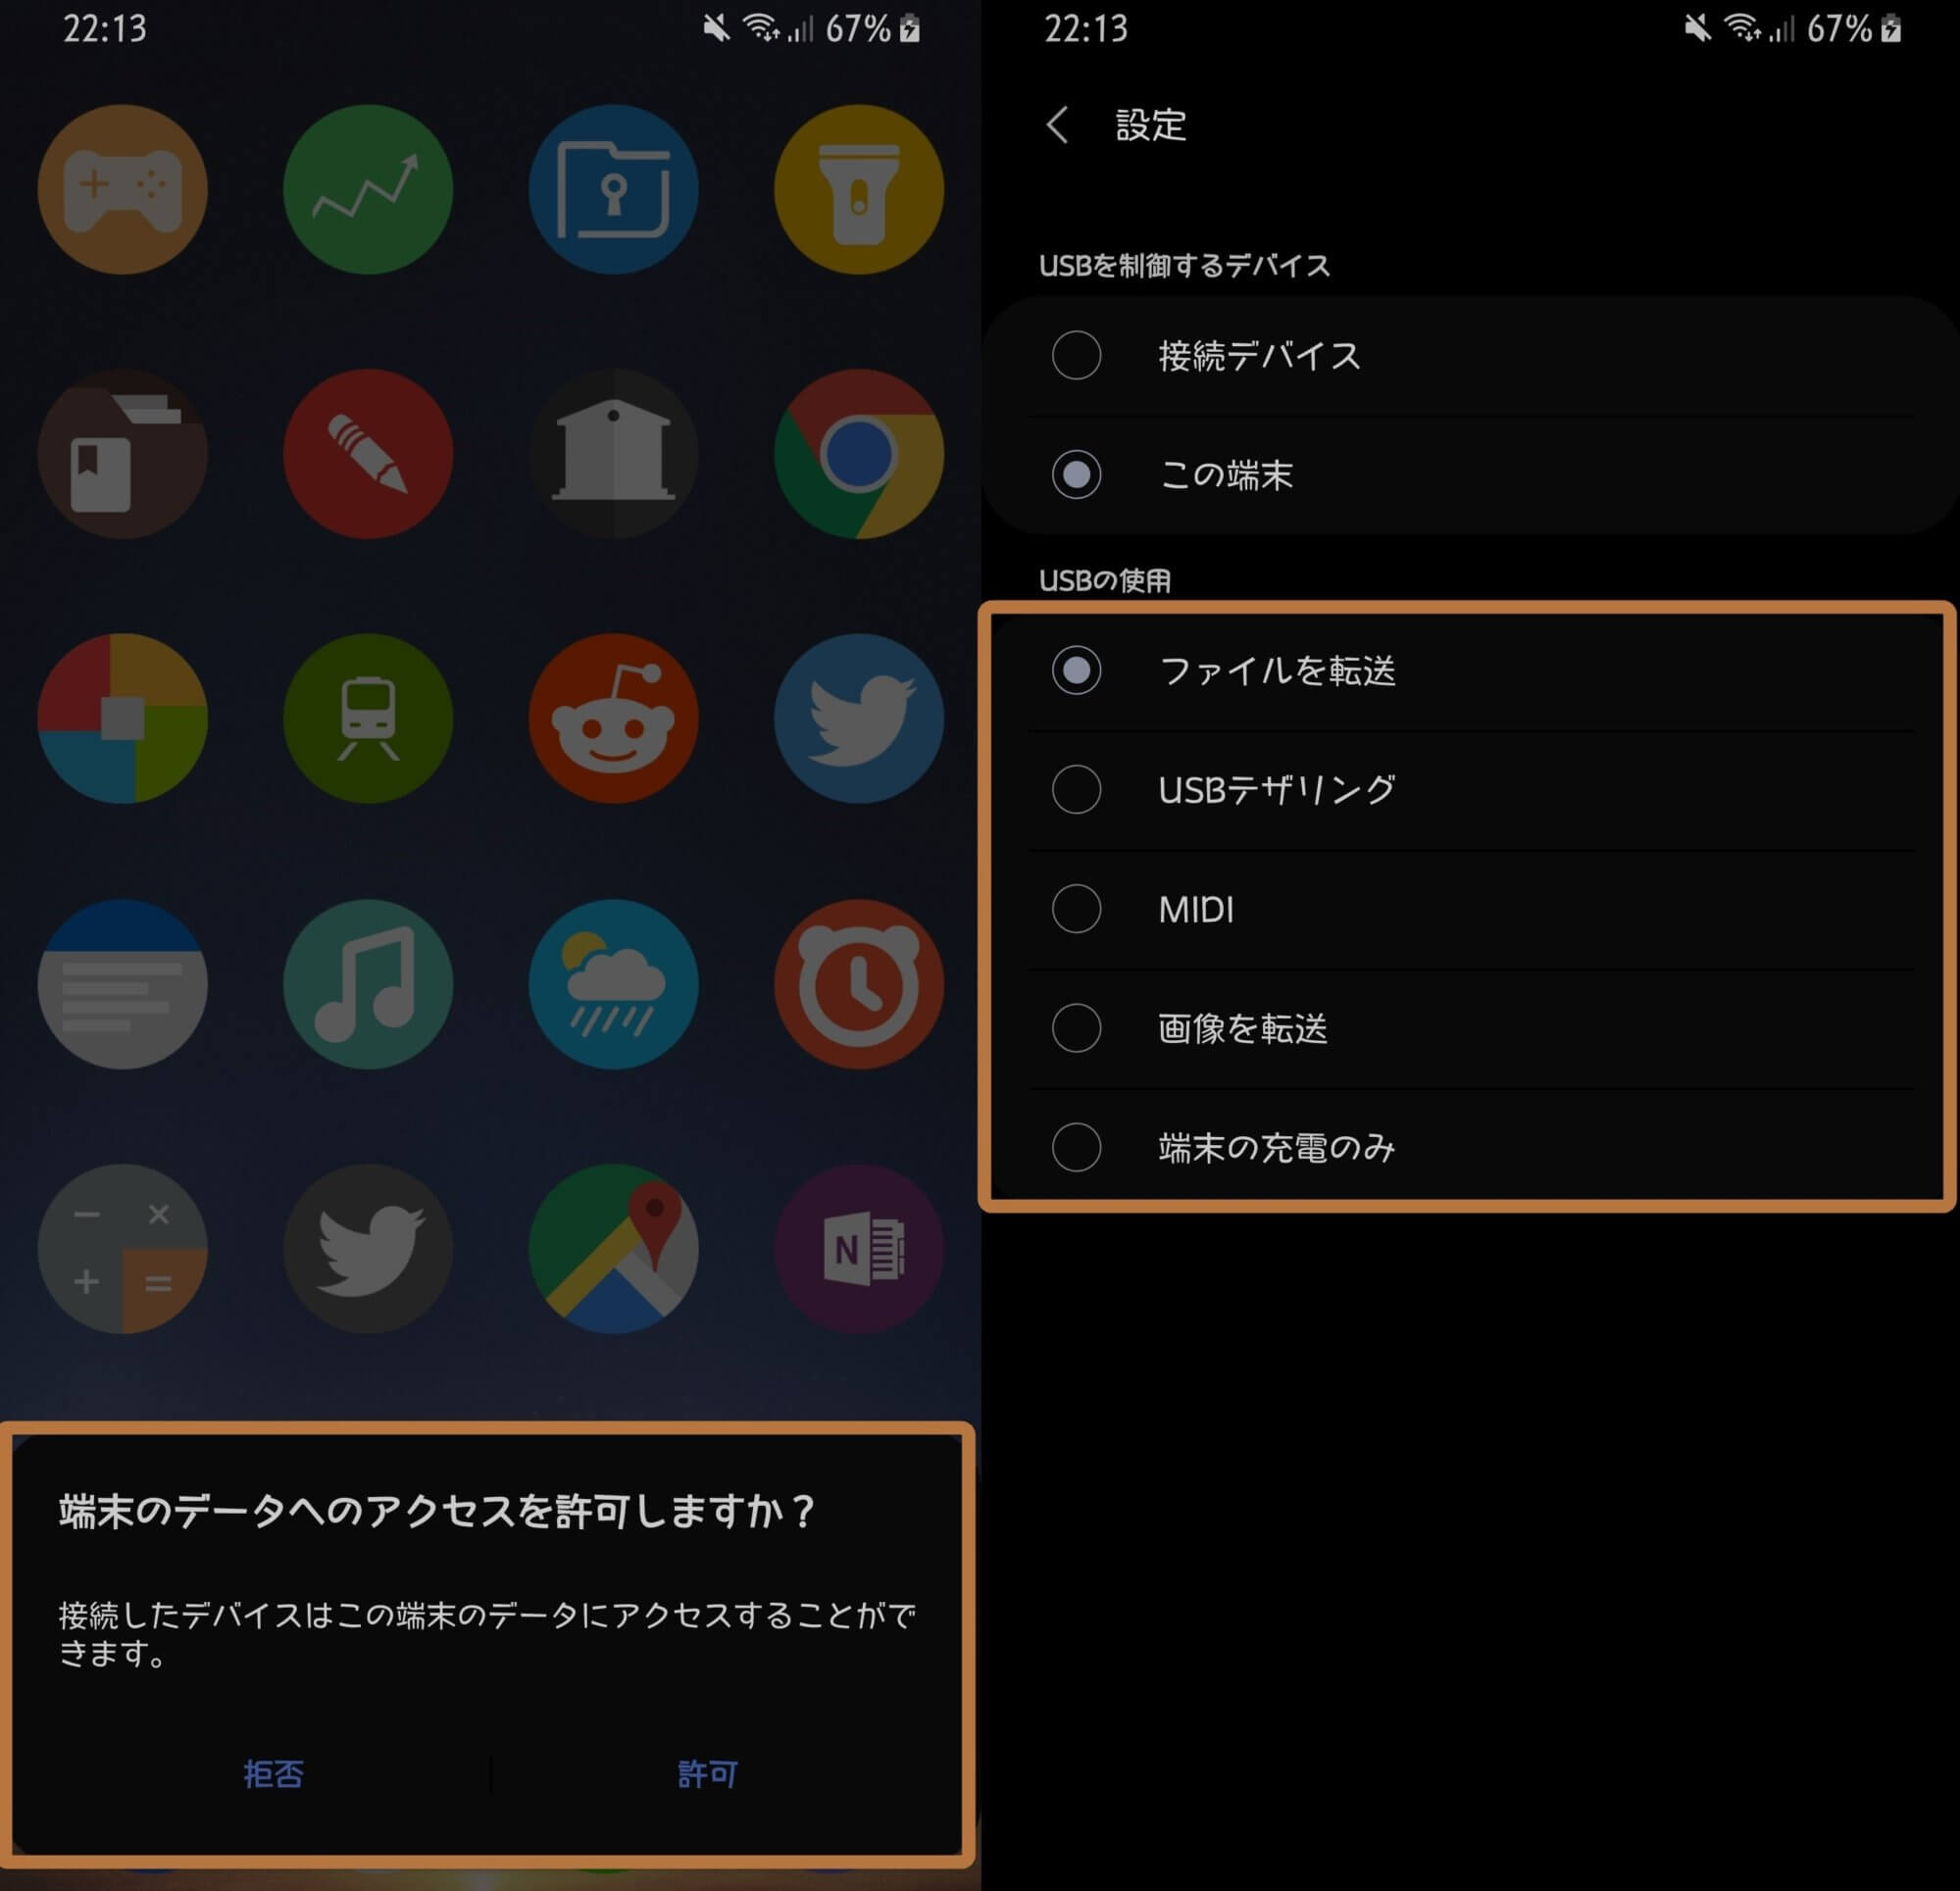 ask-connect-type-when-smartphone-usb-connect